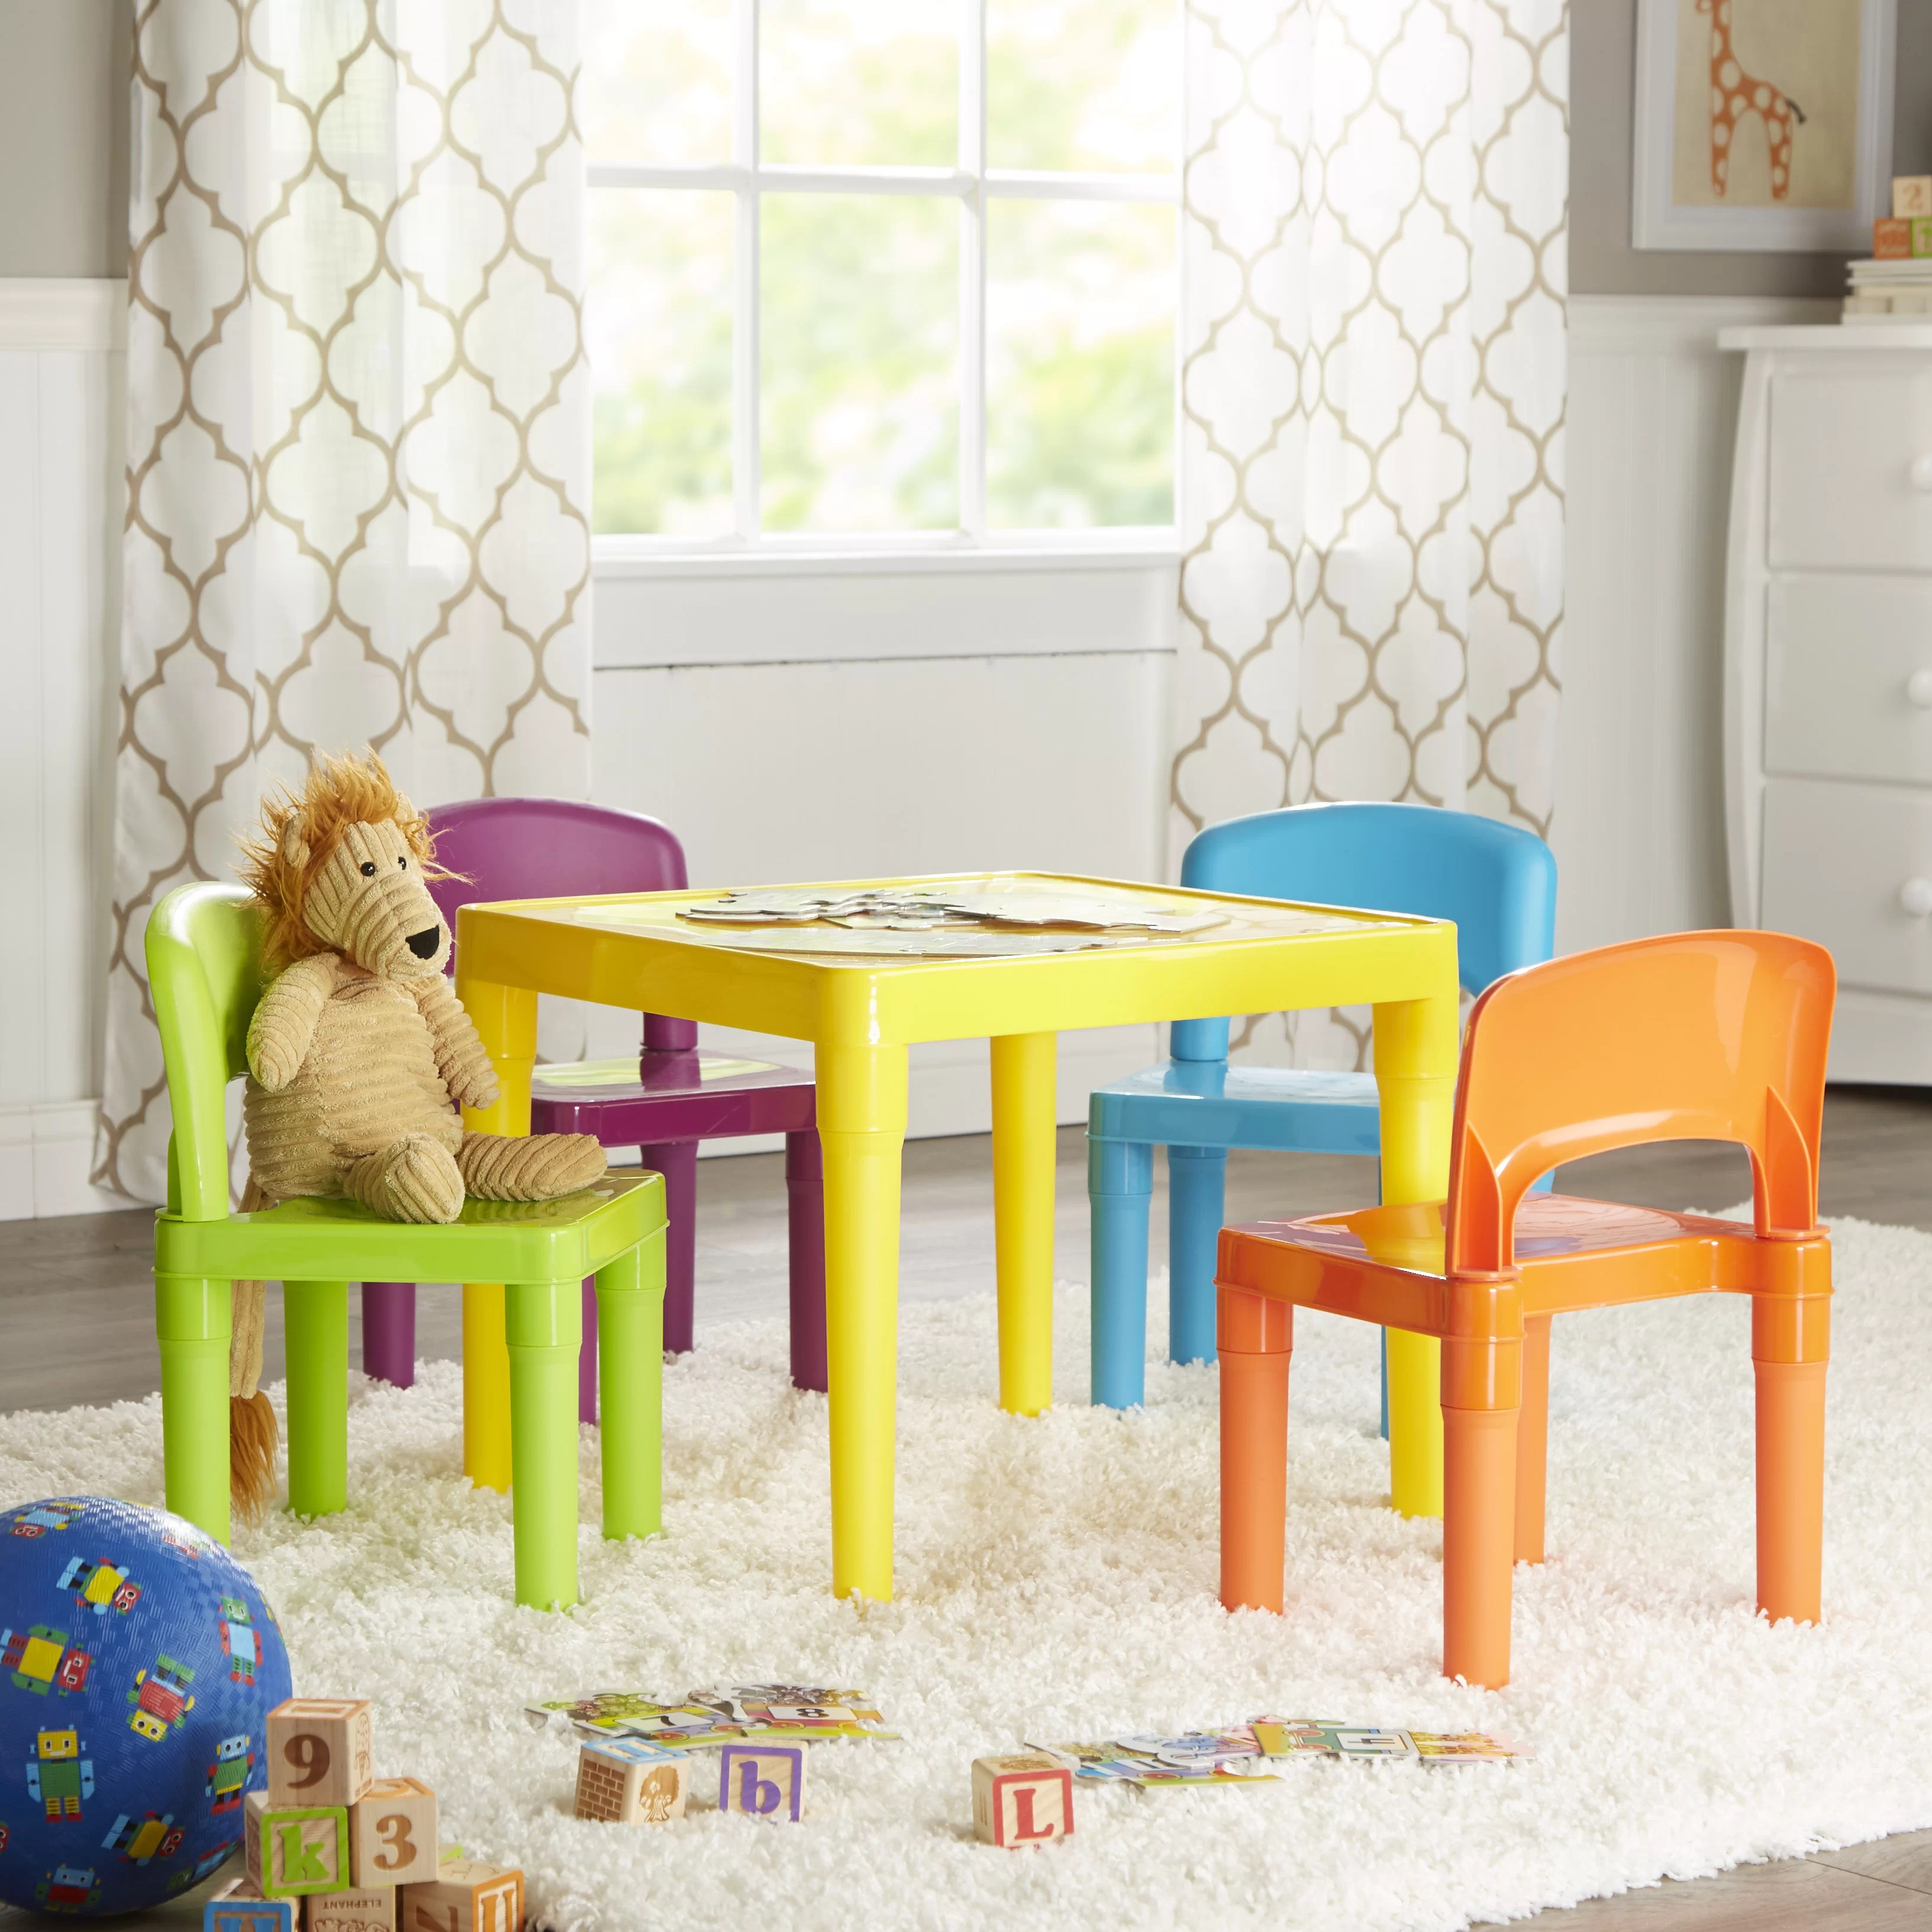 tot tutors table and chairs deck lounge kids 5 piece plastic chair set